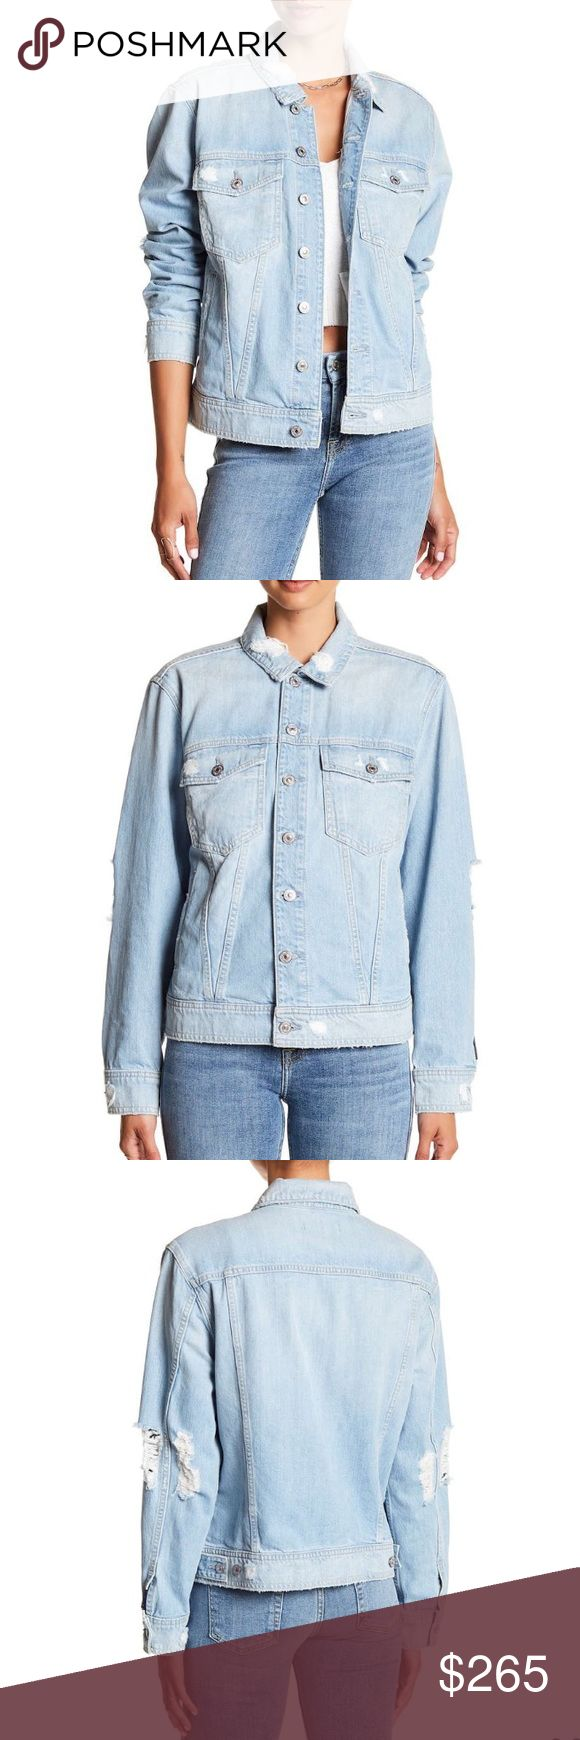 *NEW ARRIVAL* 7 FOR ALL MANKIND Boyfriend Denim Jacket: spread collar, long sleeves with button cuffs, front button closure, has distressed detail, Approx. 22in(L) *model is wearing a size small  •WILL ADD PICTURES OF ACTUAL ITEM ASAP• 7 For All Mankind Jackets & Coats Jean Jackets